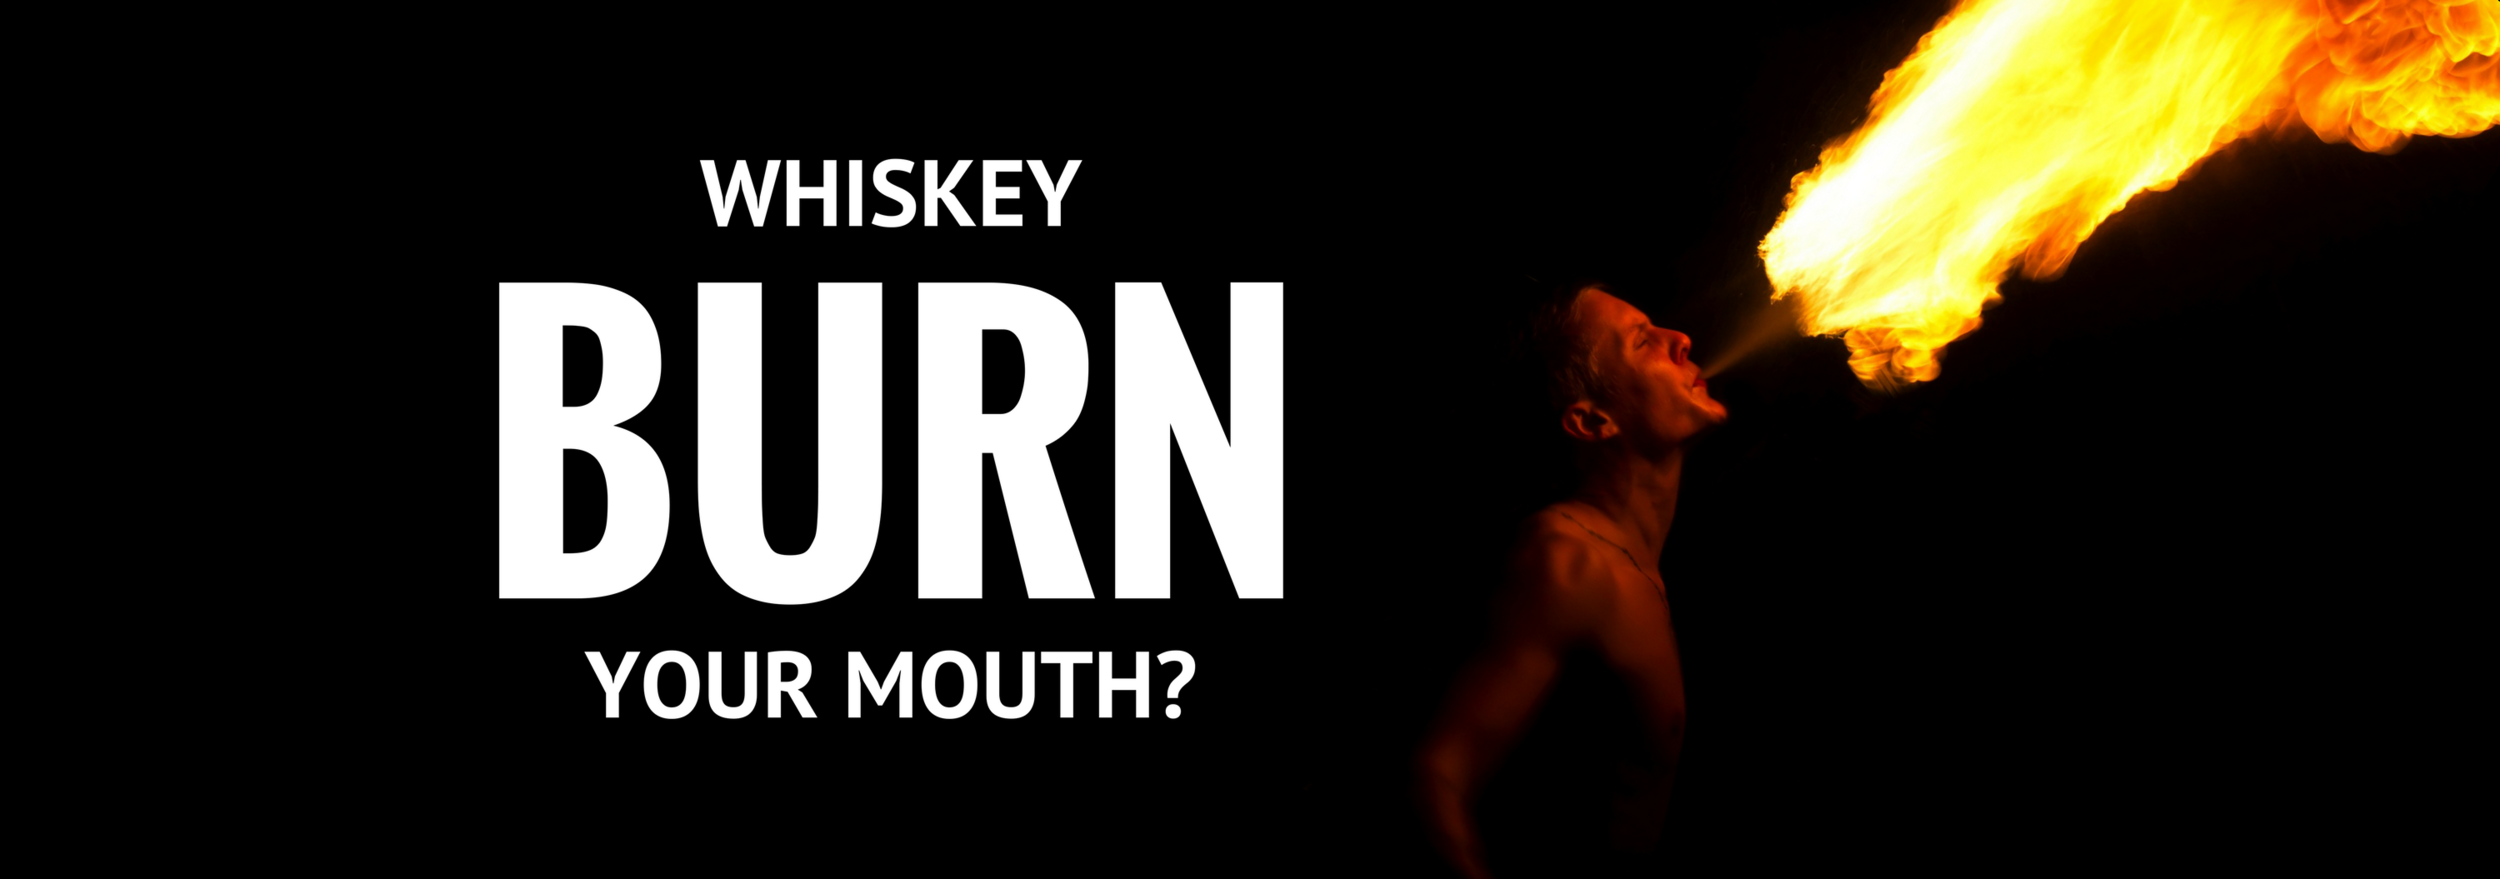 whiskey-burn-your-mouth.png